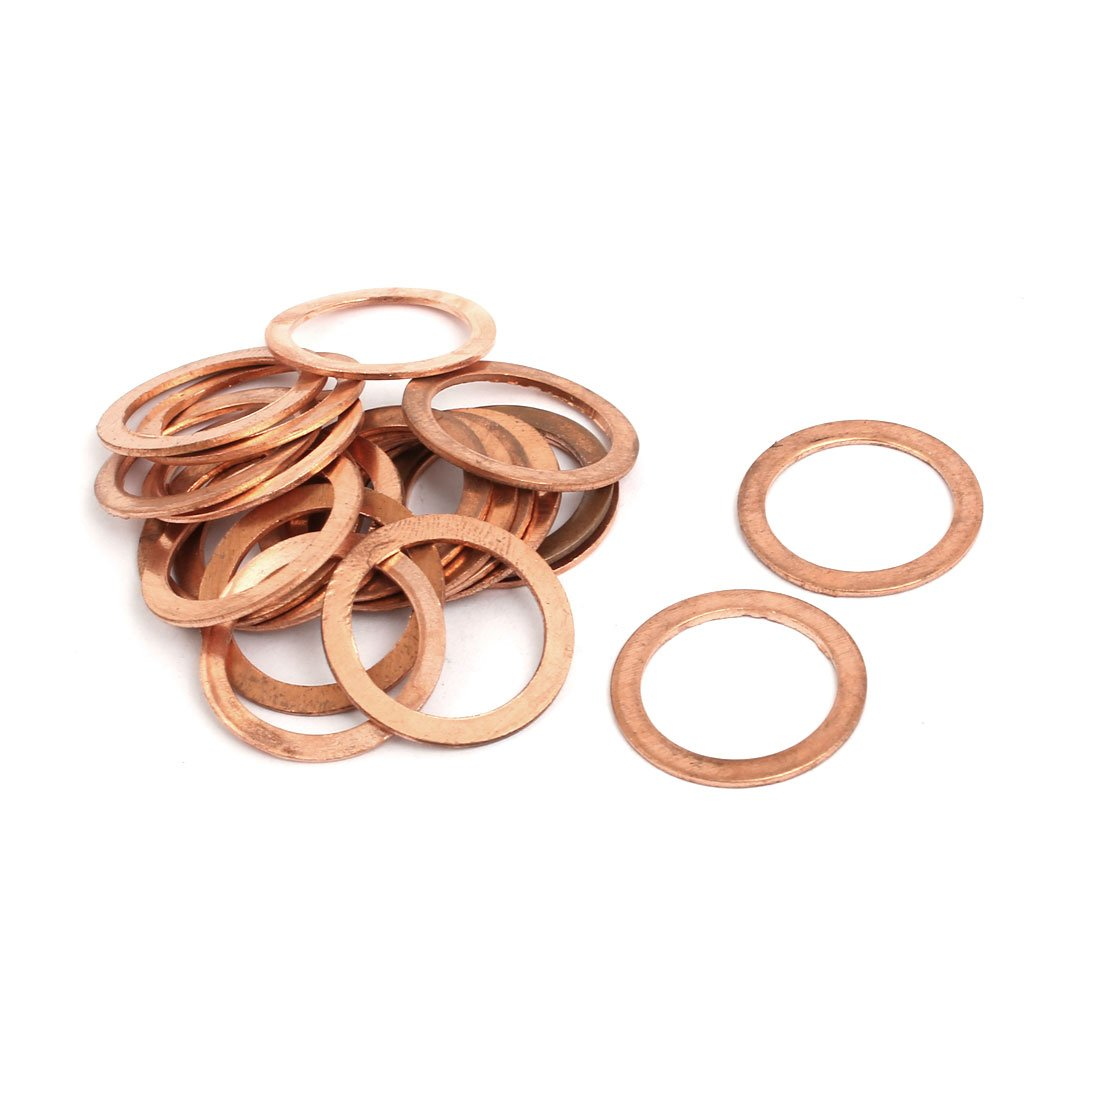 uxcell 20pcs 18mmx24mmx1mm Copper Flat Ring Sealing Crush Washer Gasket